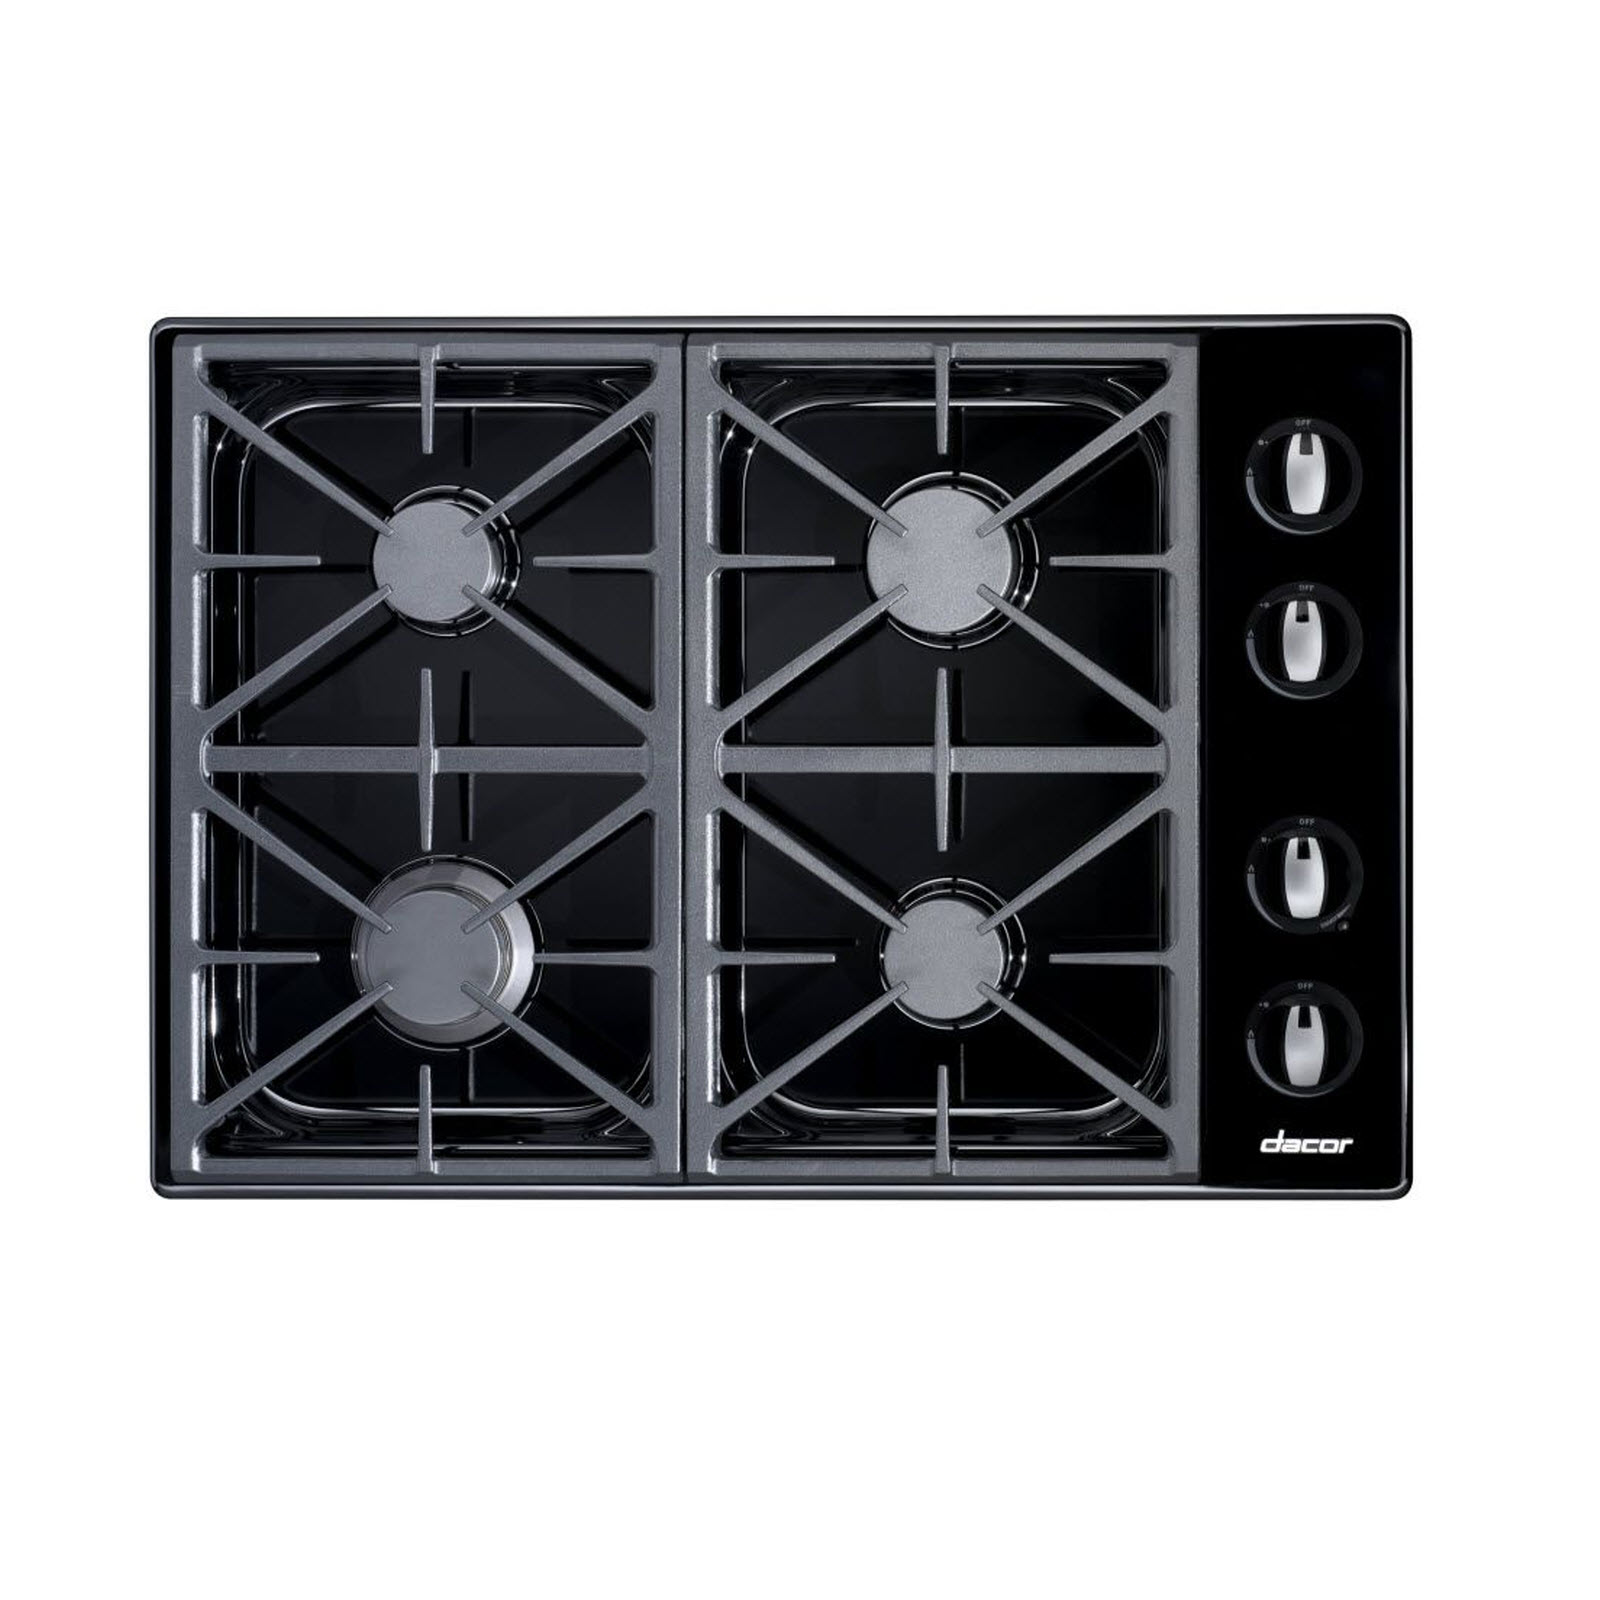 Gas Cooktop Installation Dacor Gas Cooktop 30 In Rgc304bng Sears